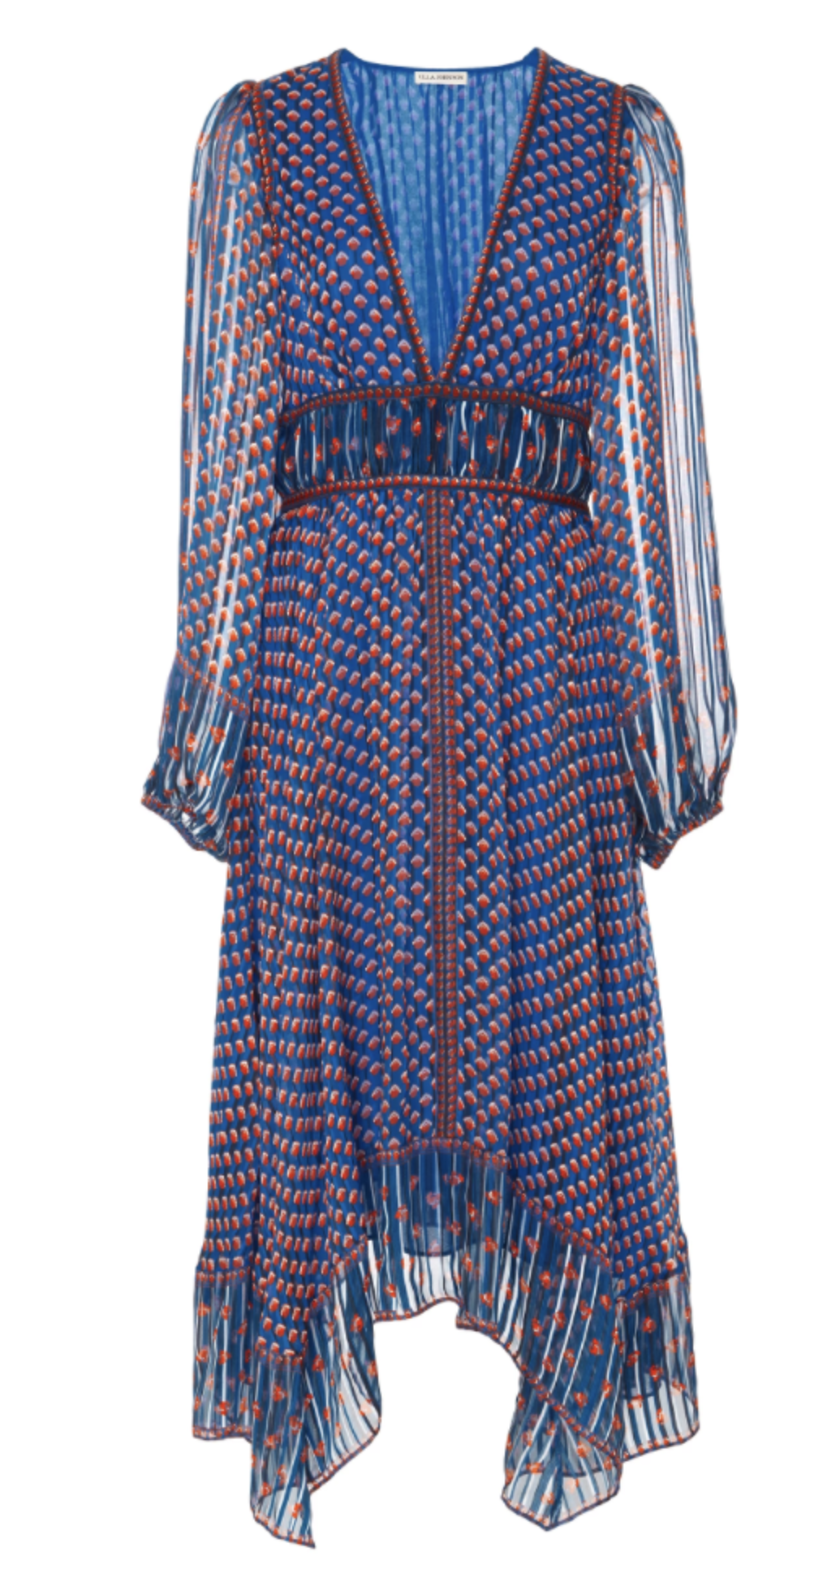 Ulla Johnson Amabelle Dress in Cerulean Dresses